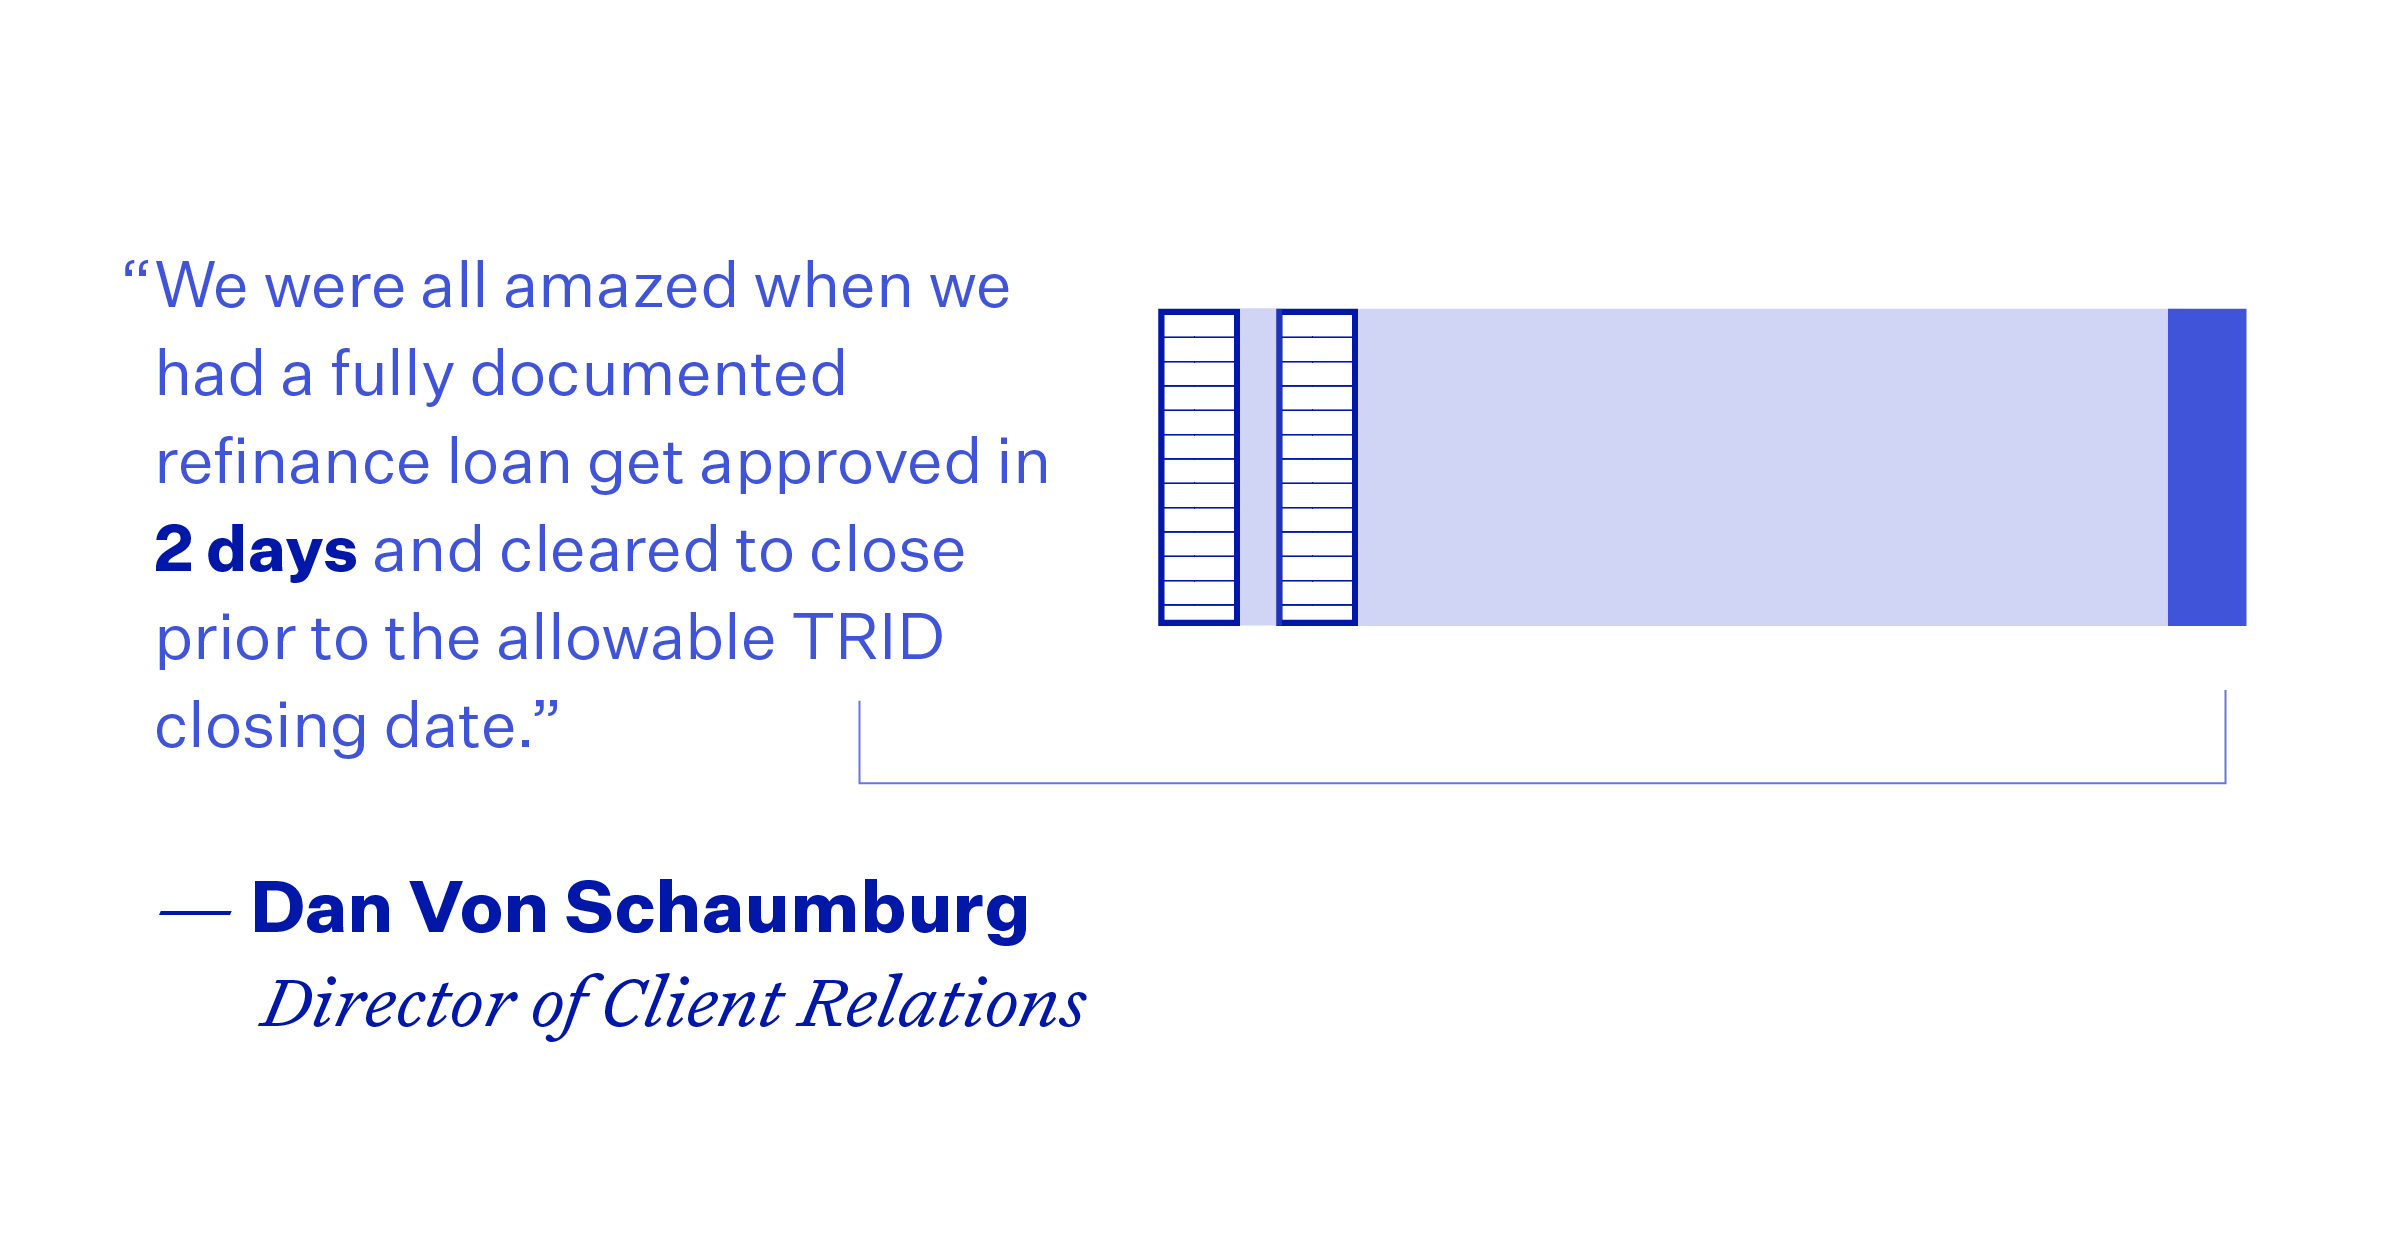 """Pullquote: """"We were all amazed when we had a fully documented refinance loan get approved in 2 days and cleared to close prior to the allowable TRID date."""""""